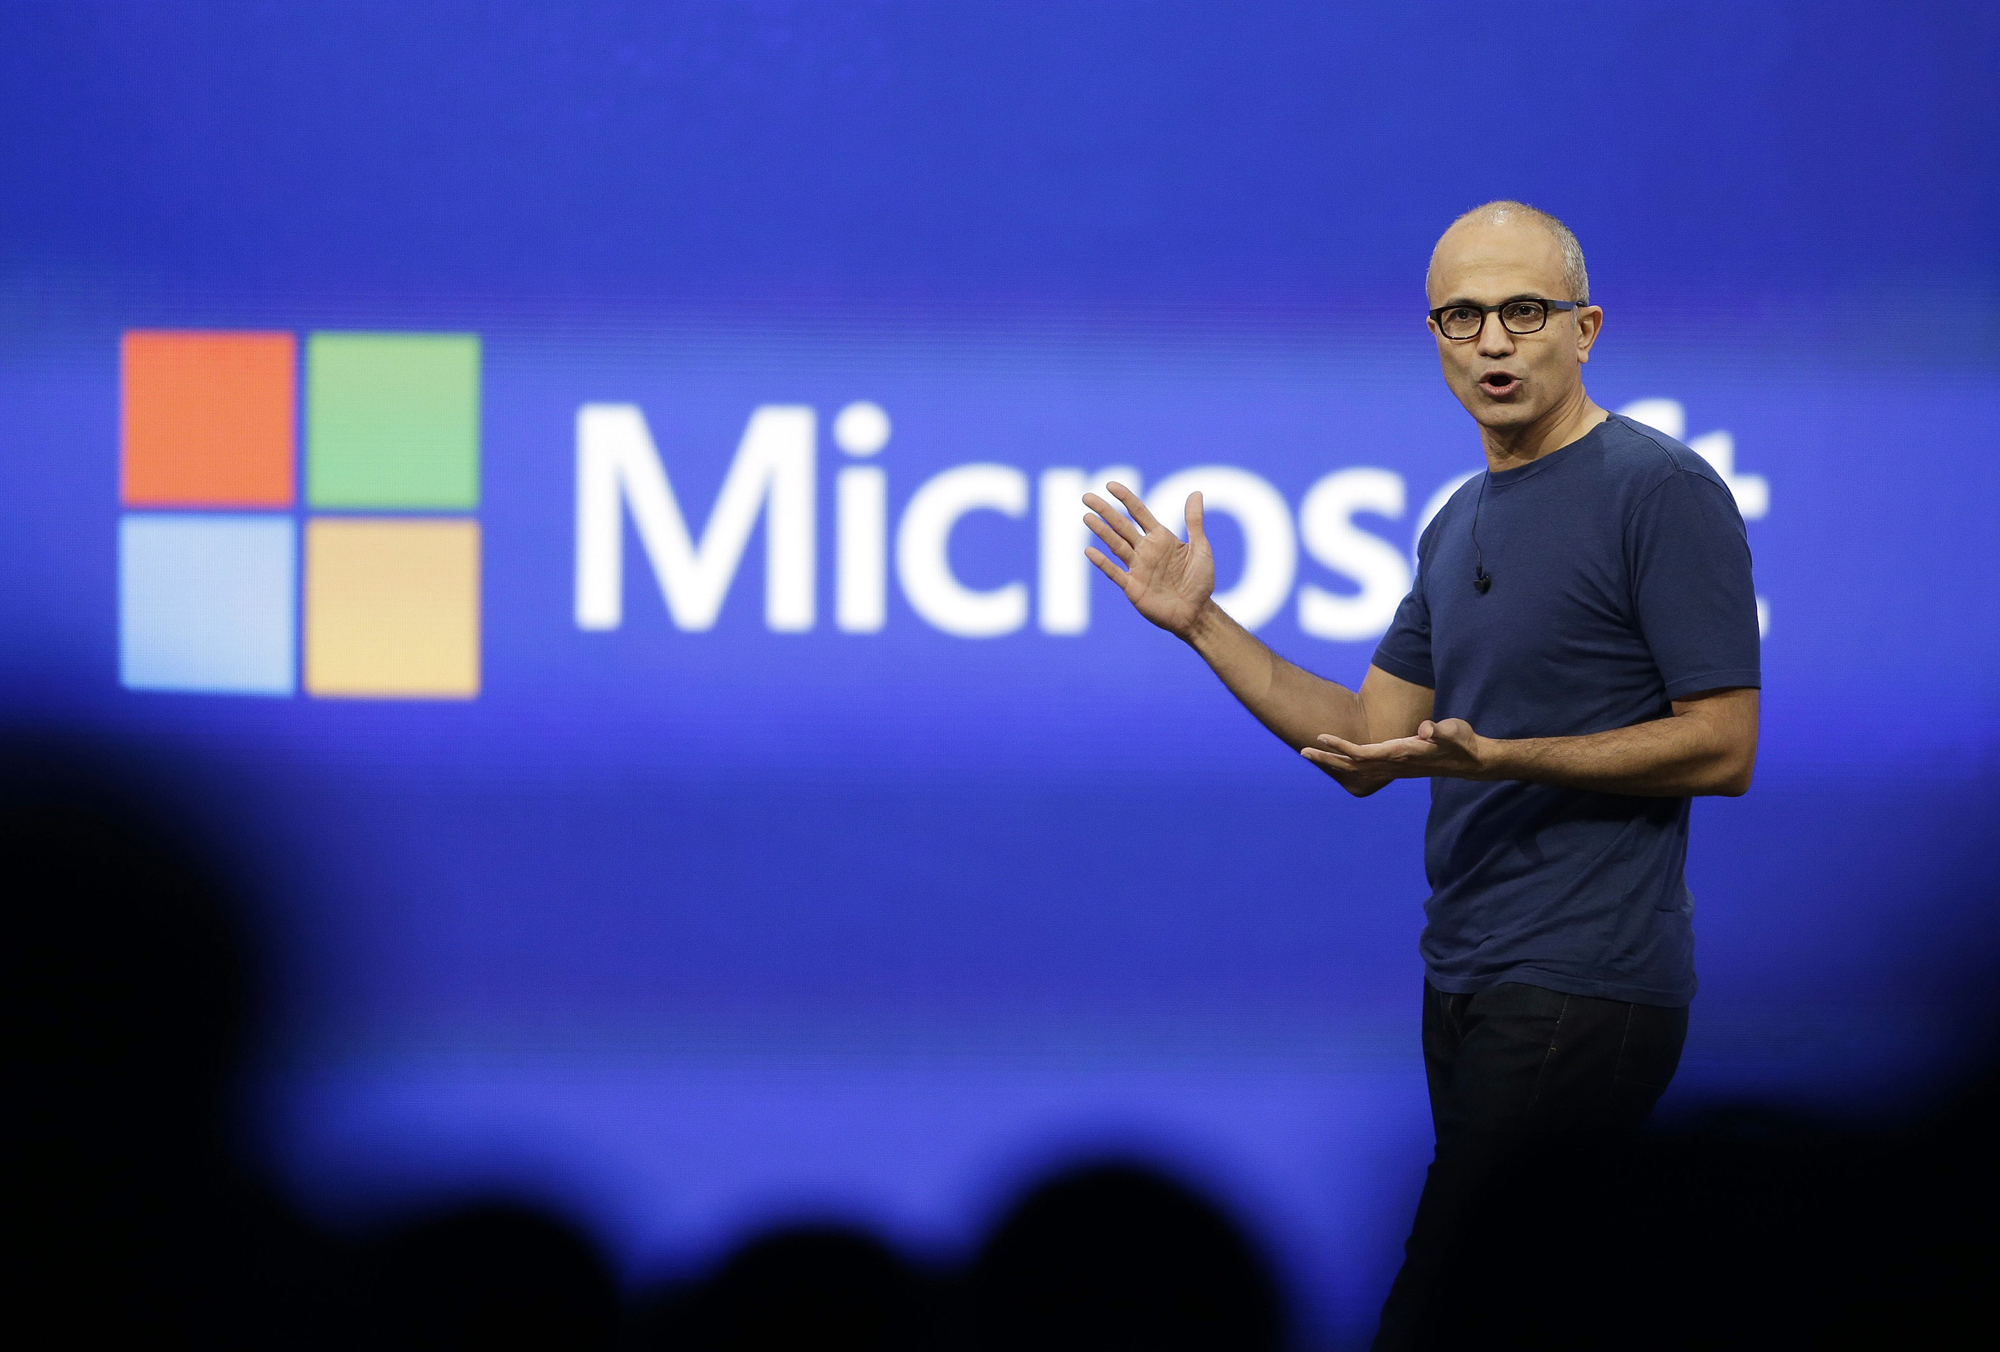 Microsoft CEO Satya Nadella gestures during the keynote address of the Build Conference in San Francisco, April 2, 2014